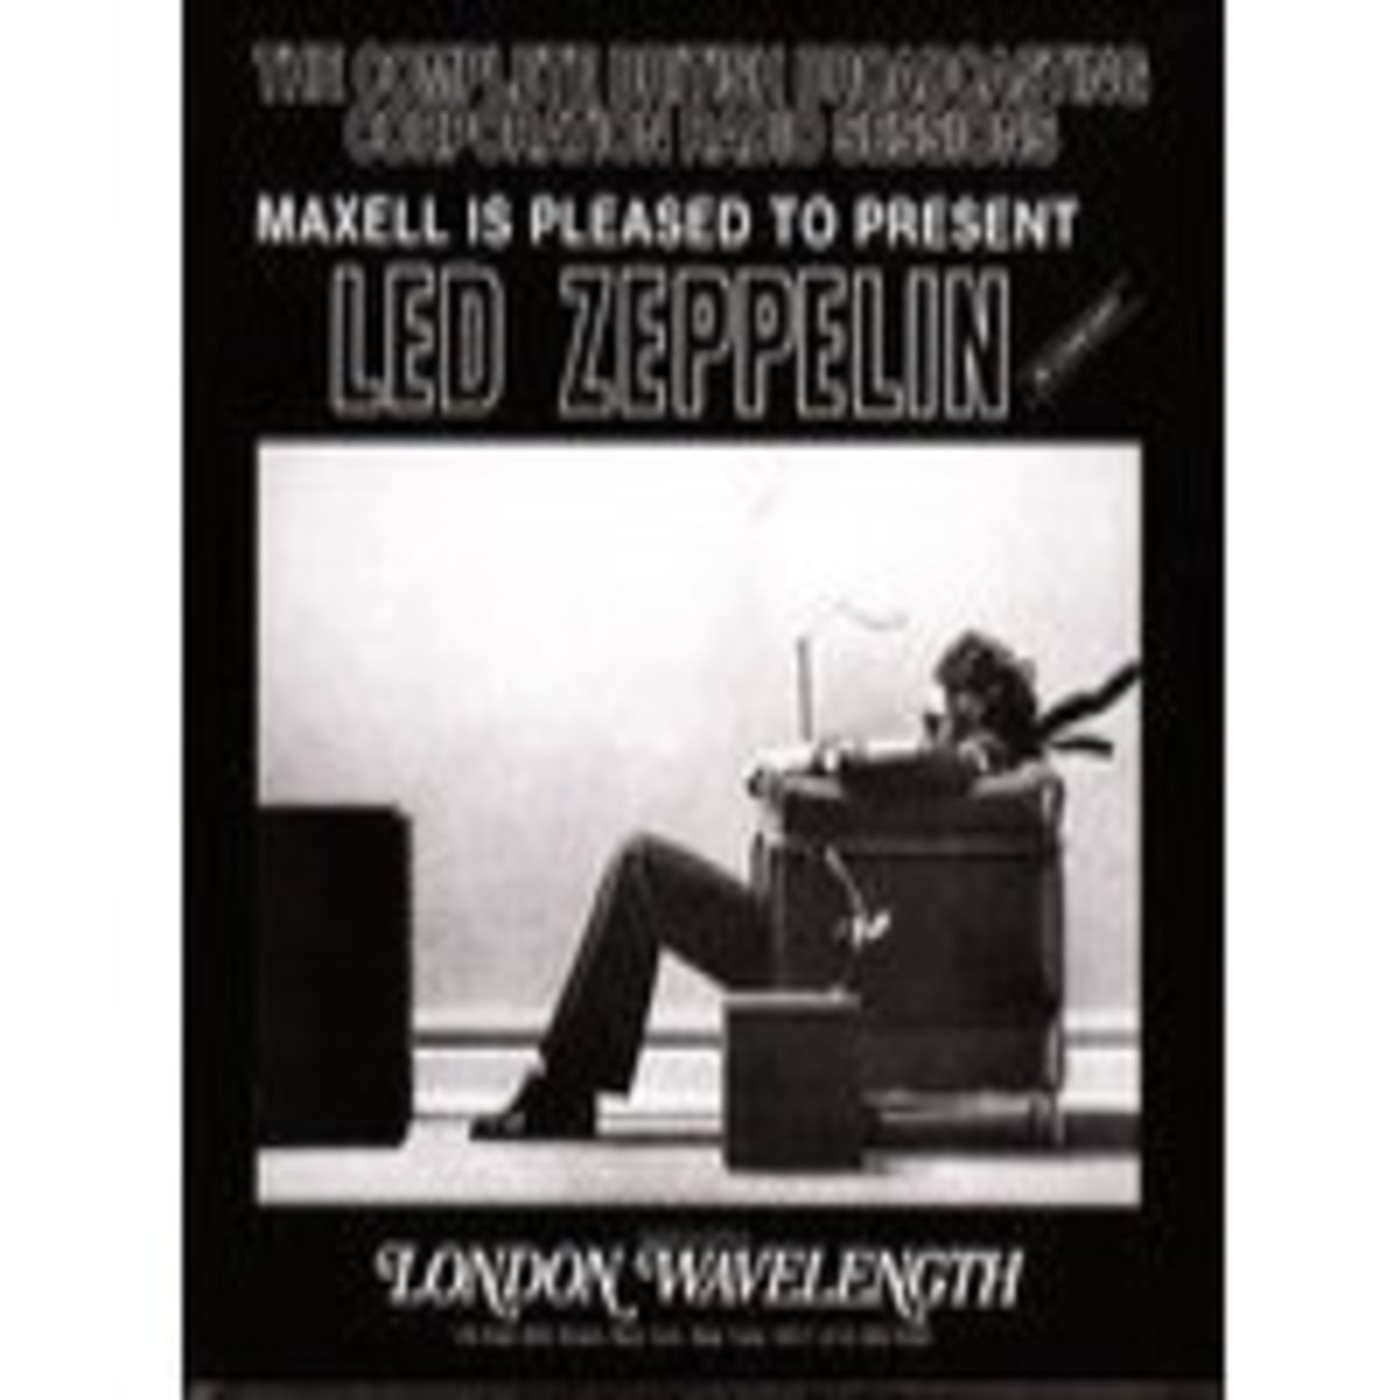 Led Zeppelin - The Complete BBC Sessions (1969-1971) CD's 03 & 04